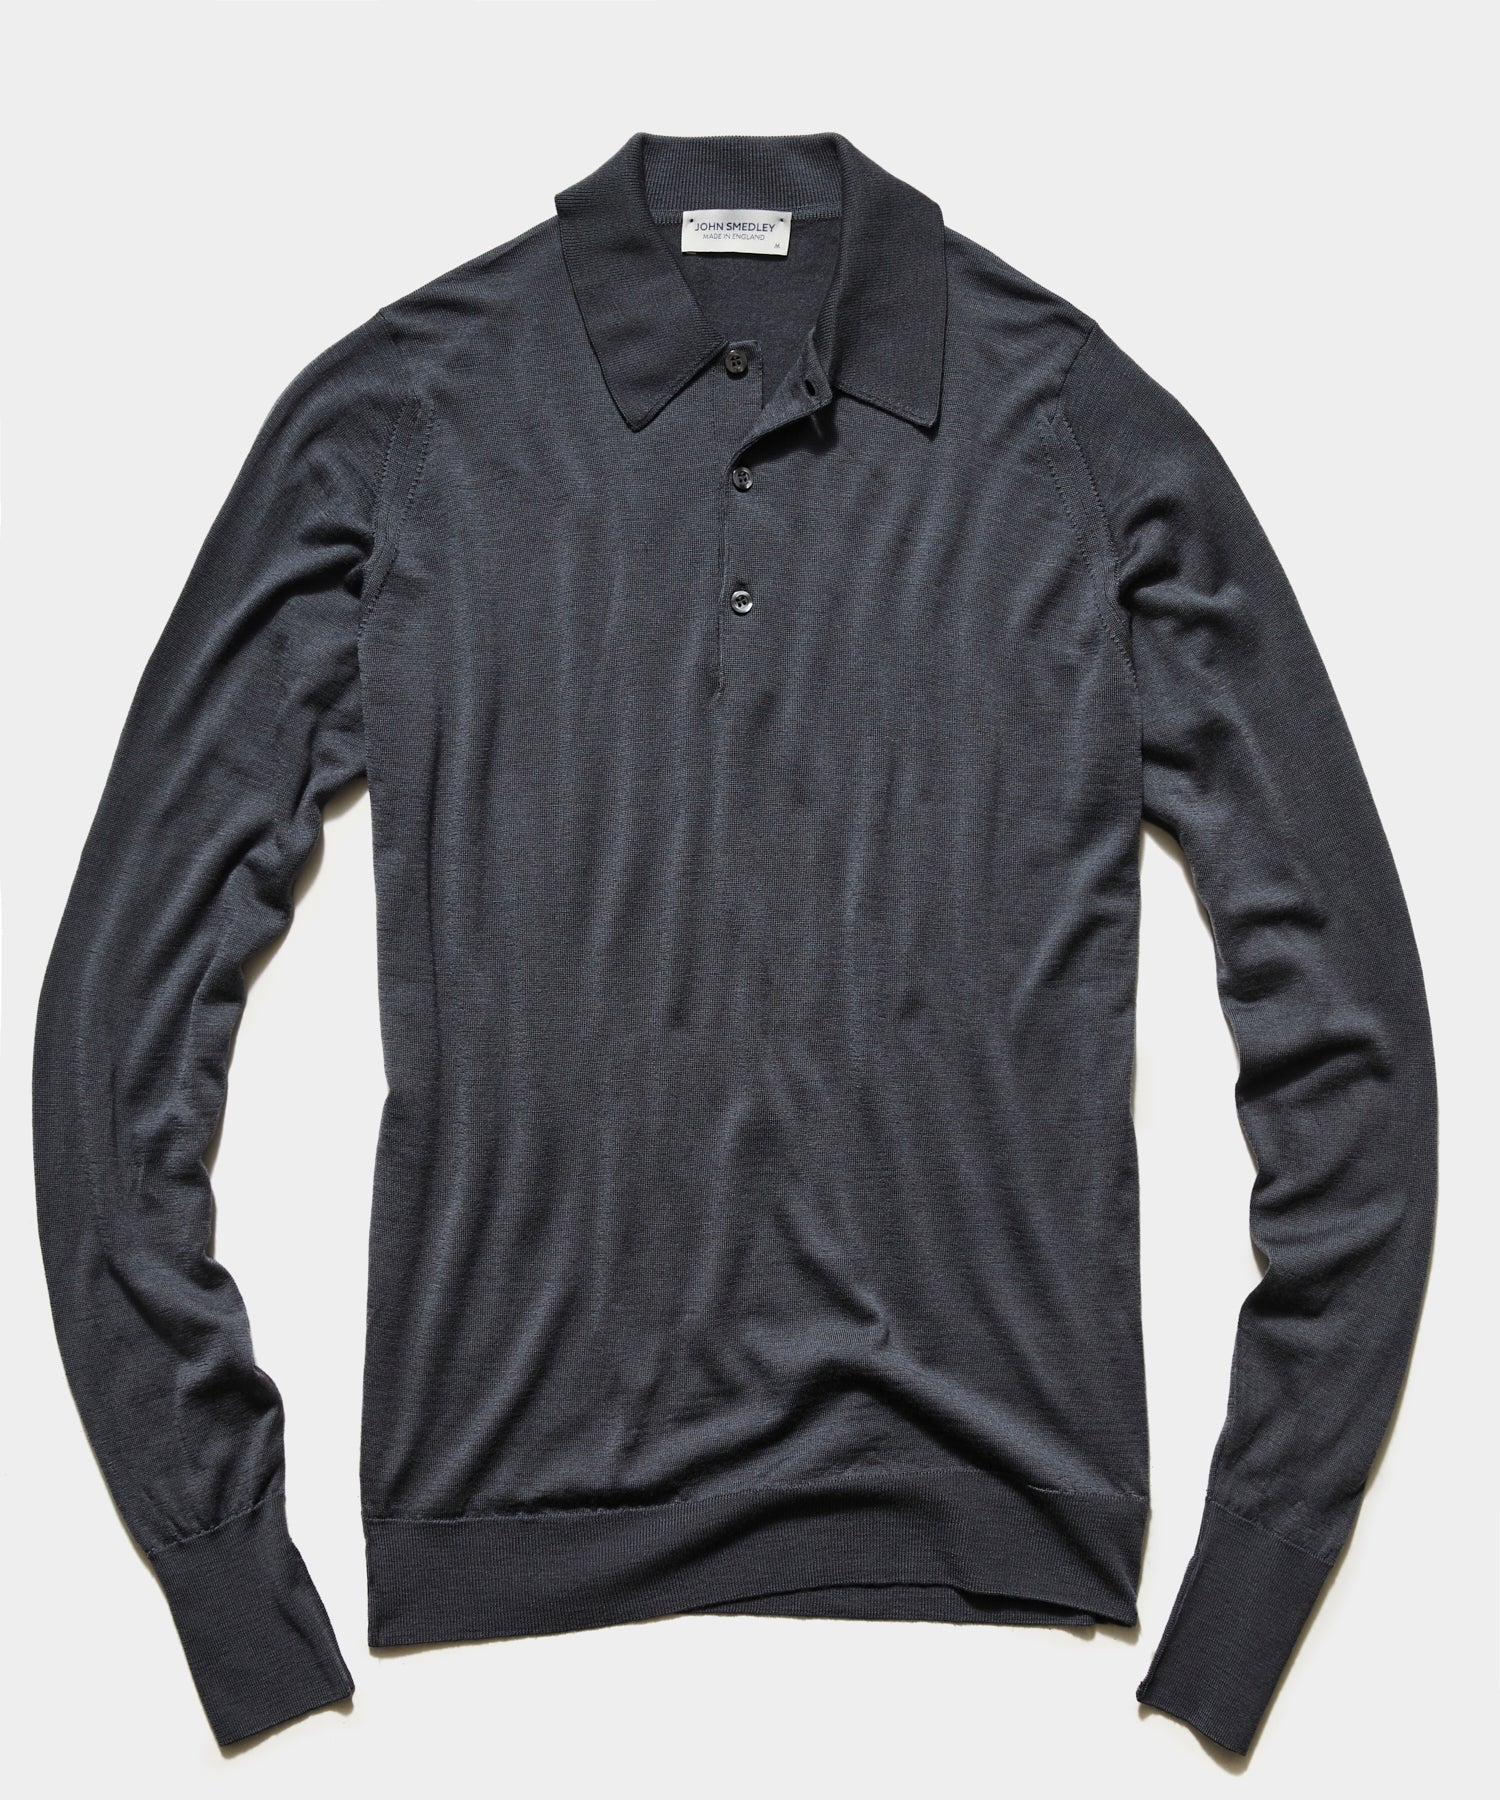 John Smedley Easy Fit Long Sleeve Polo Sweater in Slate